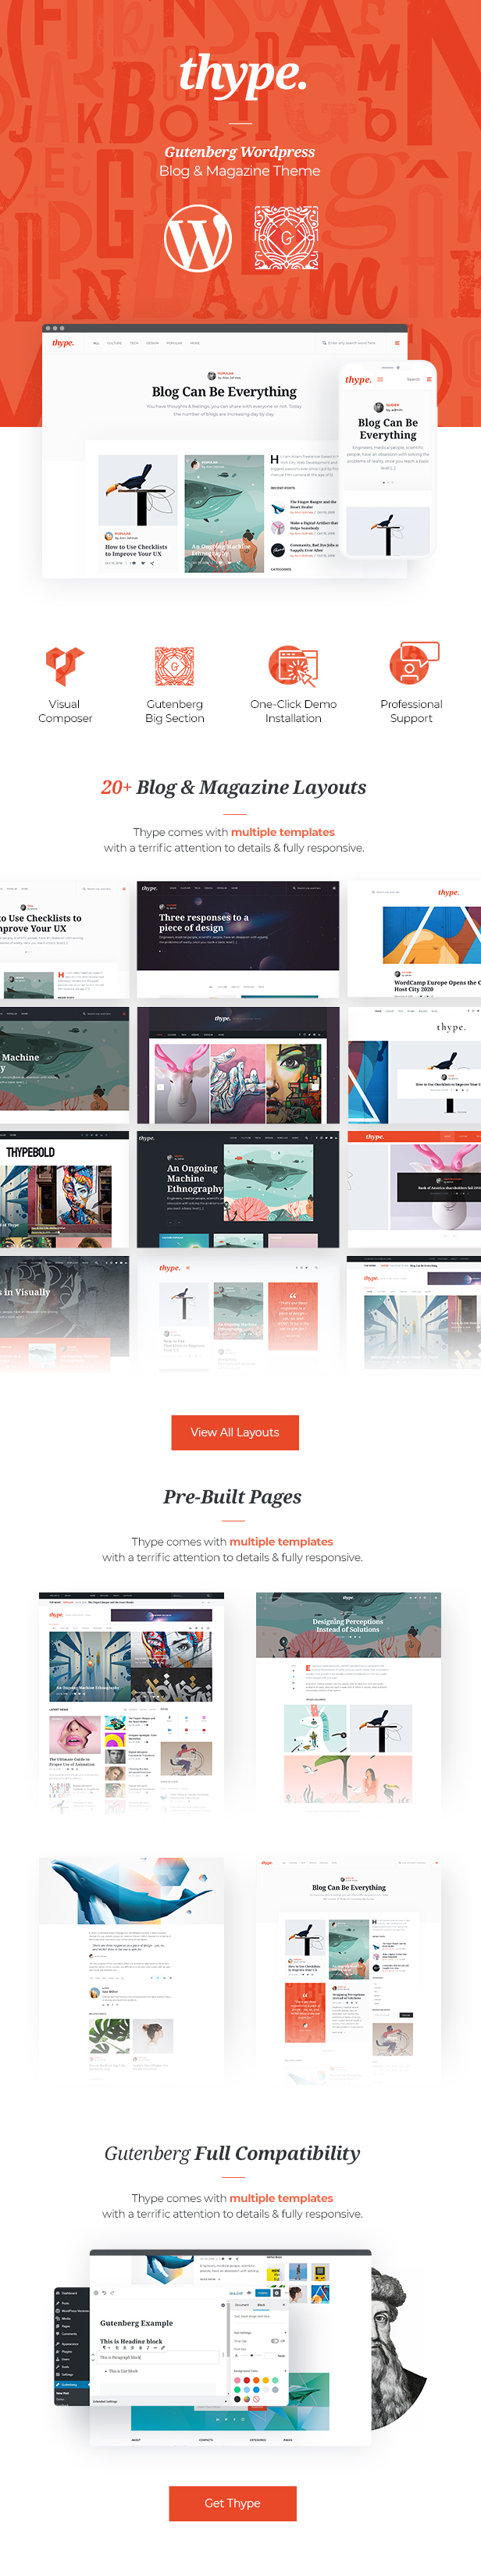 Thype | Multi-Concept Blog & Magazine WordPress Theme - 2